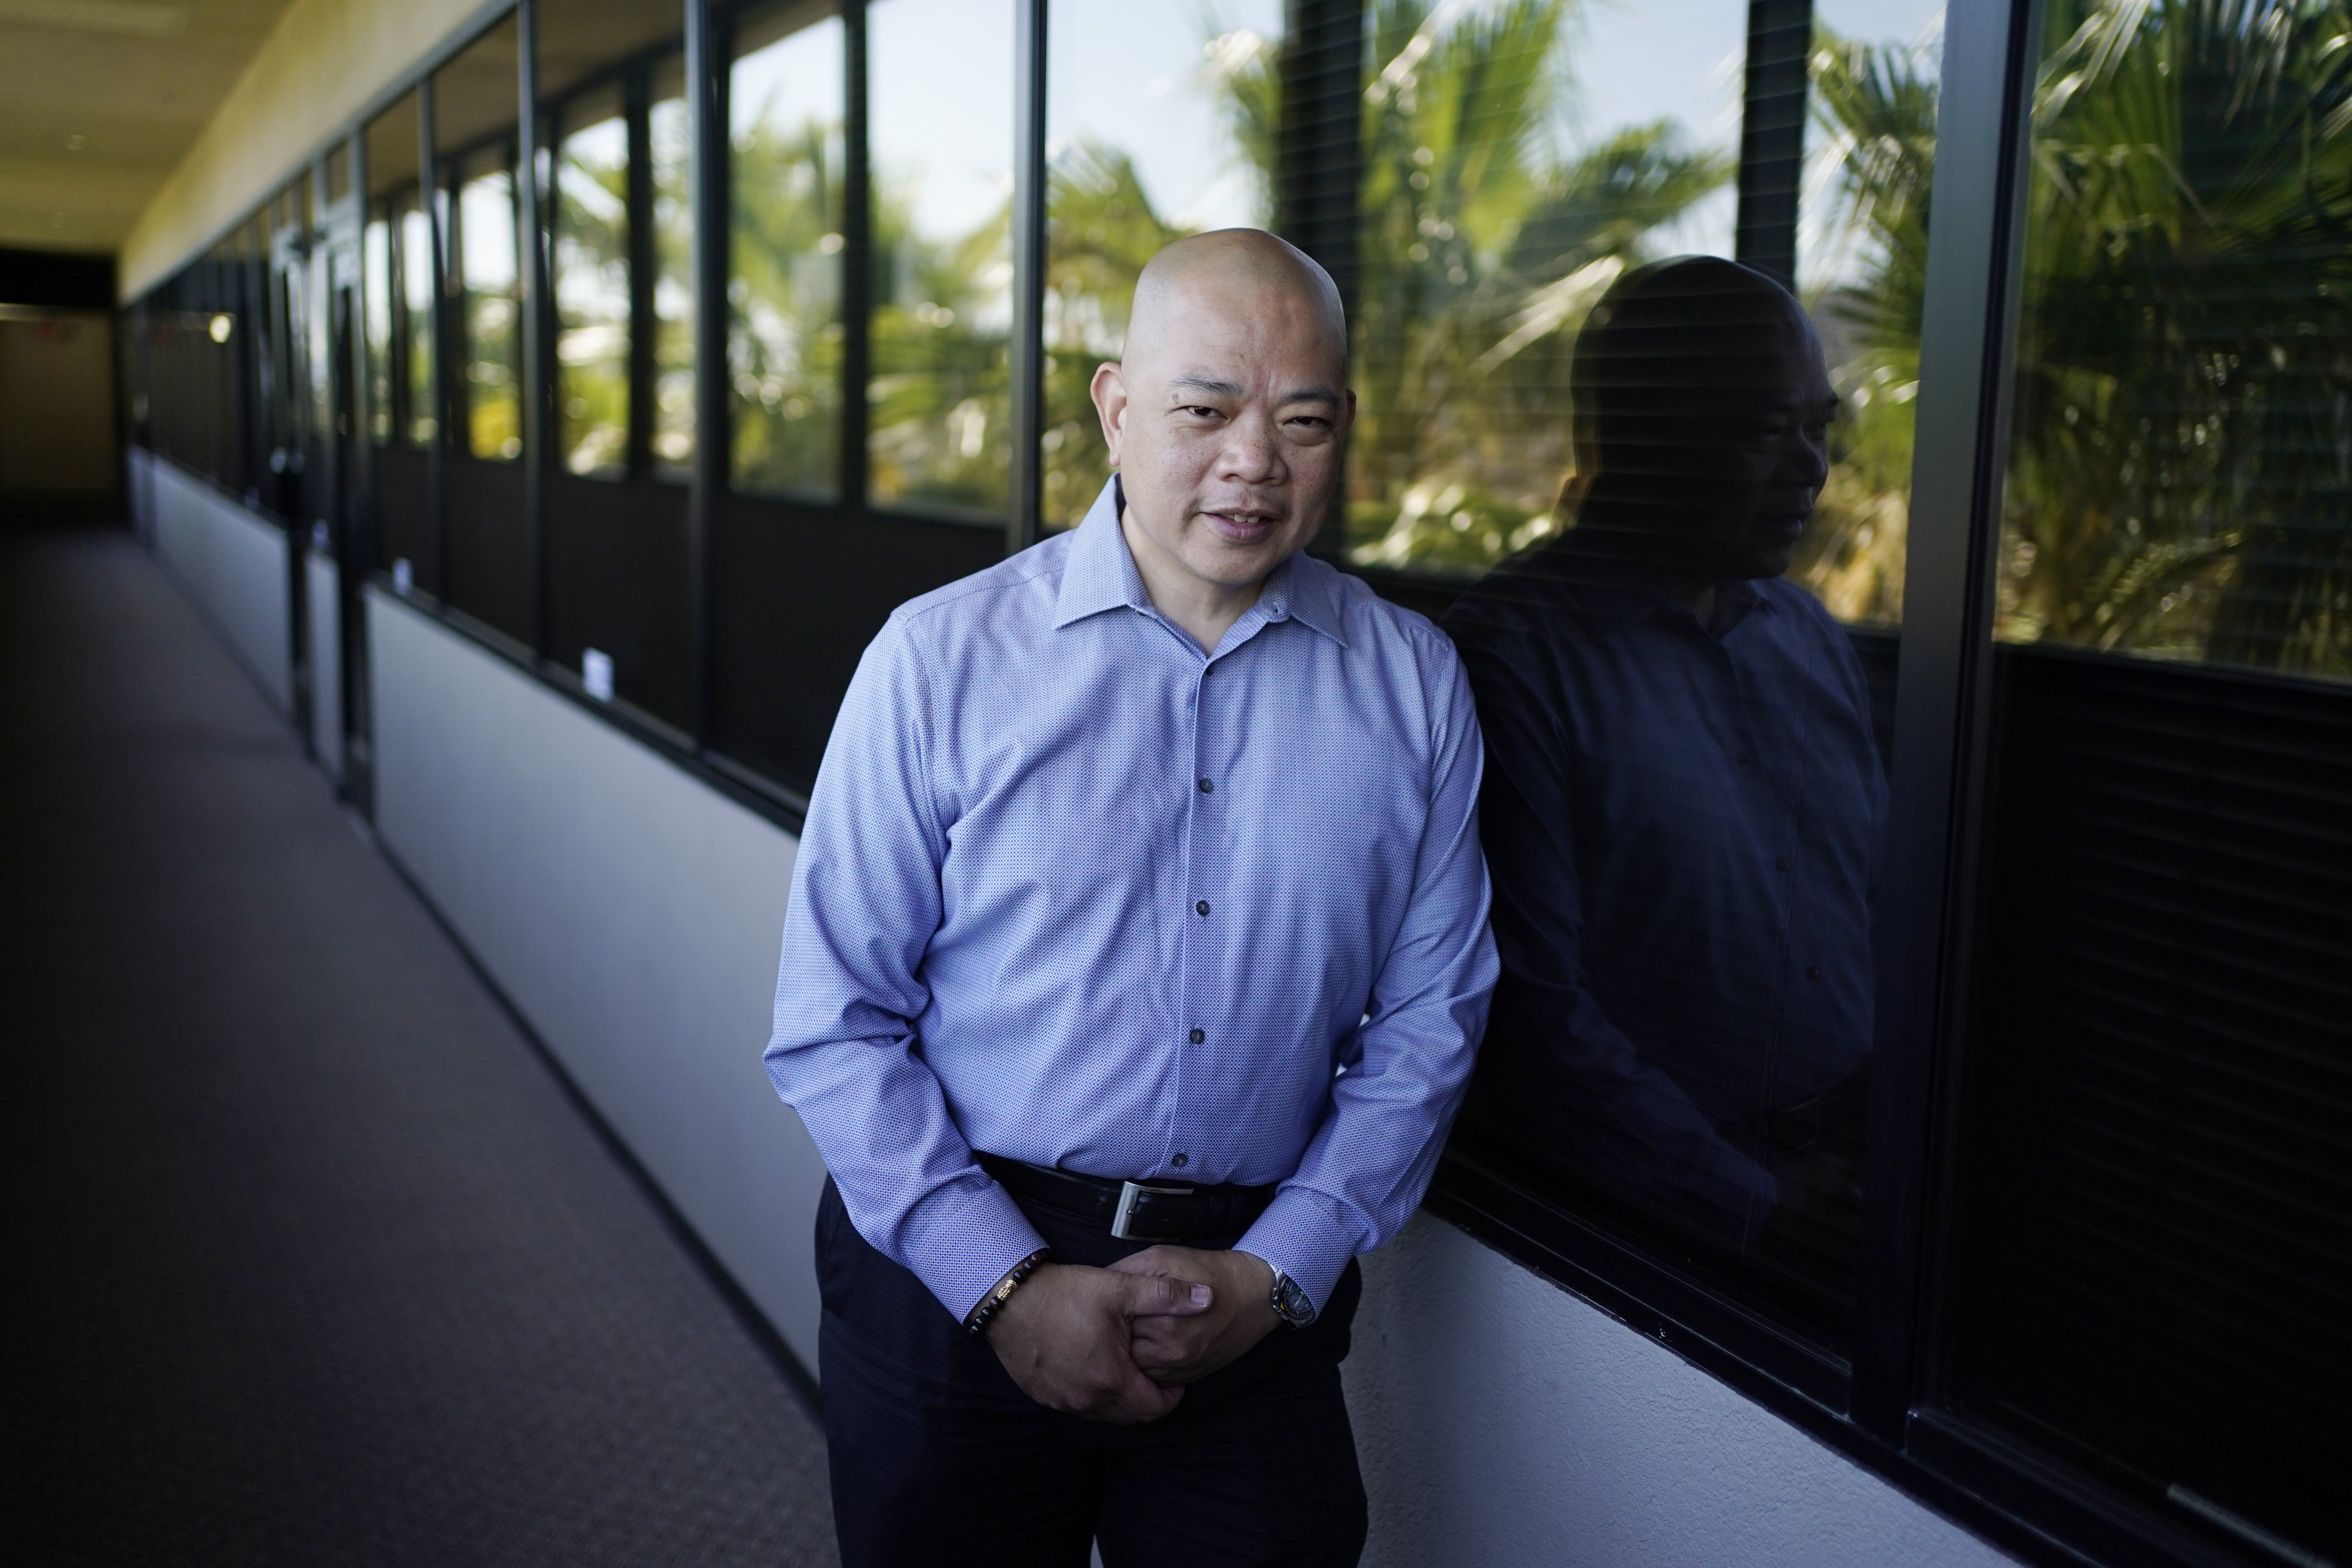 Las Vegas. Vinuya a Filipino American businessman in Las Vegas hasn't decided if he'll vote again for Donald Trump in the battleground state of Nevada